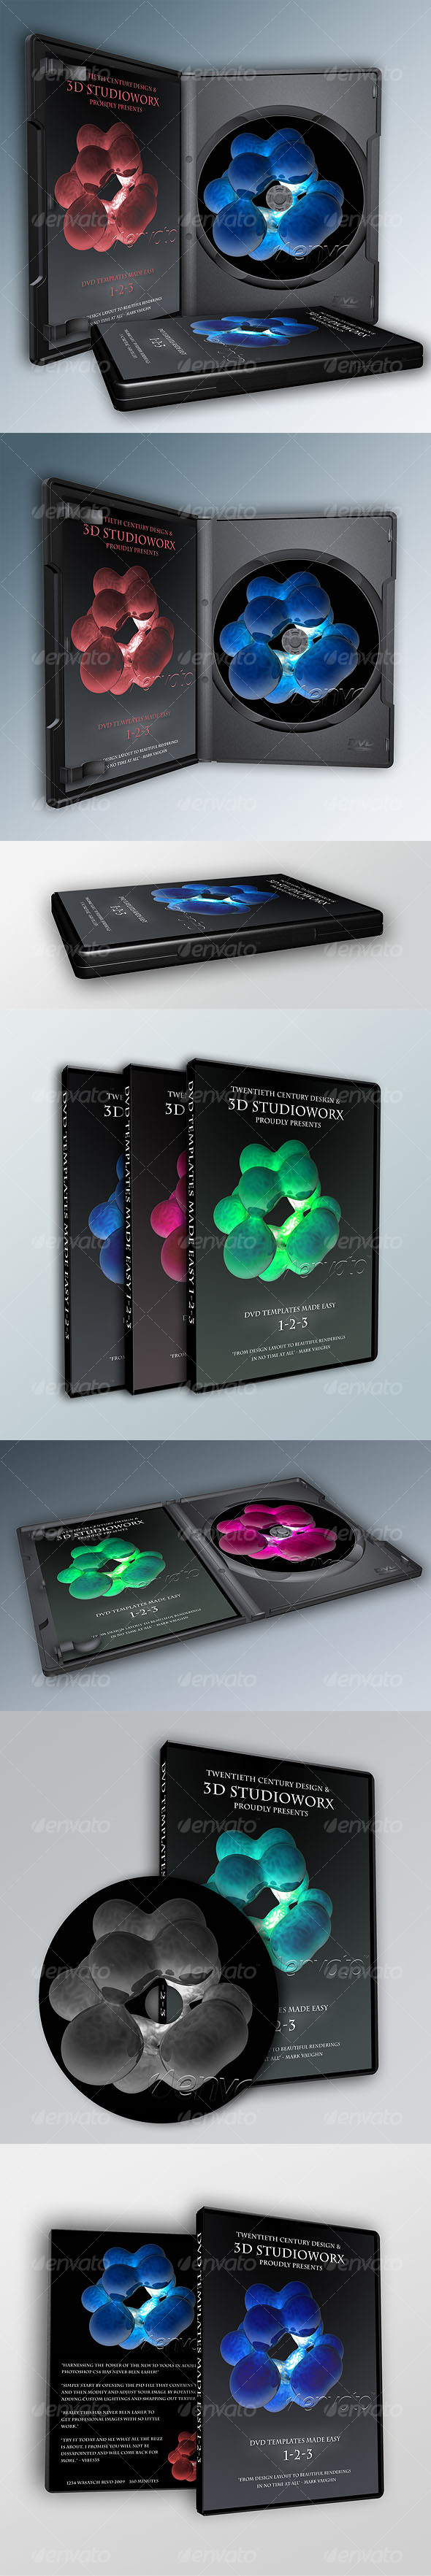 7-in-1 3D DVD Templates the EASY WAY - 3D Renders Graphics